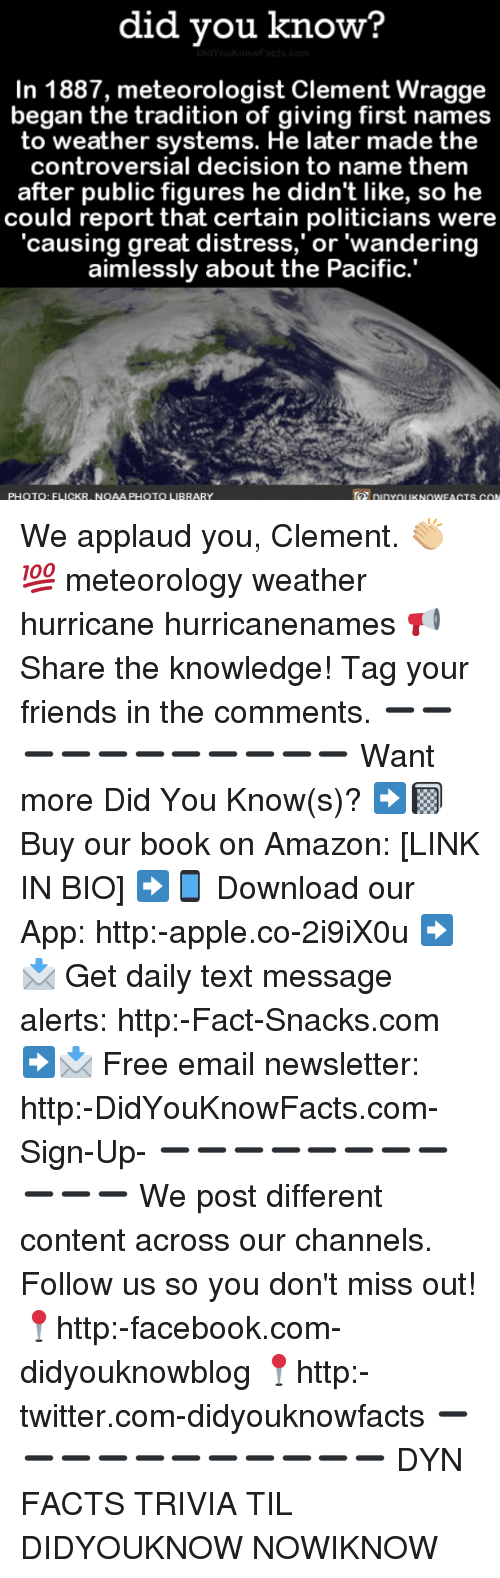 Amazon, Apple, and Facebook: did vou know?  In 1887, meteorologist Clement Wragge  began the tradition of giving first names  to weather systems. He later made the  controversial decision to name them  after public figures he didn't like, so he  could report that certain politicians were  'causing great distress,' or 'wandering  aimlessly about the Pacific.  PHOTOQ: FLICKR, NOAA PHOTO LIBRARY  piYUKNOWEAGTS CON We applaud you, Clement. 👏🏼💯 meteorology weather hurricane hurricanenames 📢 Share the knowledge! Tag your friends in the comments. ➖➖➖➖➖➖➖➖➖➖➖ Want more Did You Know(s)? ➡📓 Buy our book on Amazon: [LINK IN BIO] ➡📱 Download our App: http:-apple.co-2i9iX0u ➡📩 Get daily text message alerts: http:-Fact-Snacks.com ➡📩 Free email newsletter: http:-DidYouKnowFacts.com-Sign-Up- ➖➖➖➖➖➖➖➖➖➖➖ We post different content across our channels. Follow us so you don't miss out! 📍http:-facebook.com-didyouknowblog 📍http:-twitter.com-didyouknowfacts ➖➖➖➖➖➖➖➖➖➖➖ DYN FACTS TRIVIA TIL DIDYOUKNOW NOWIKNOW